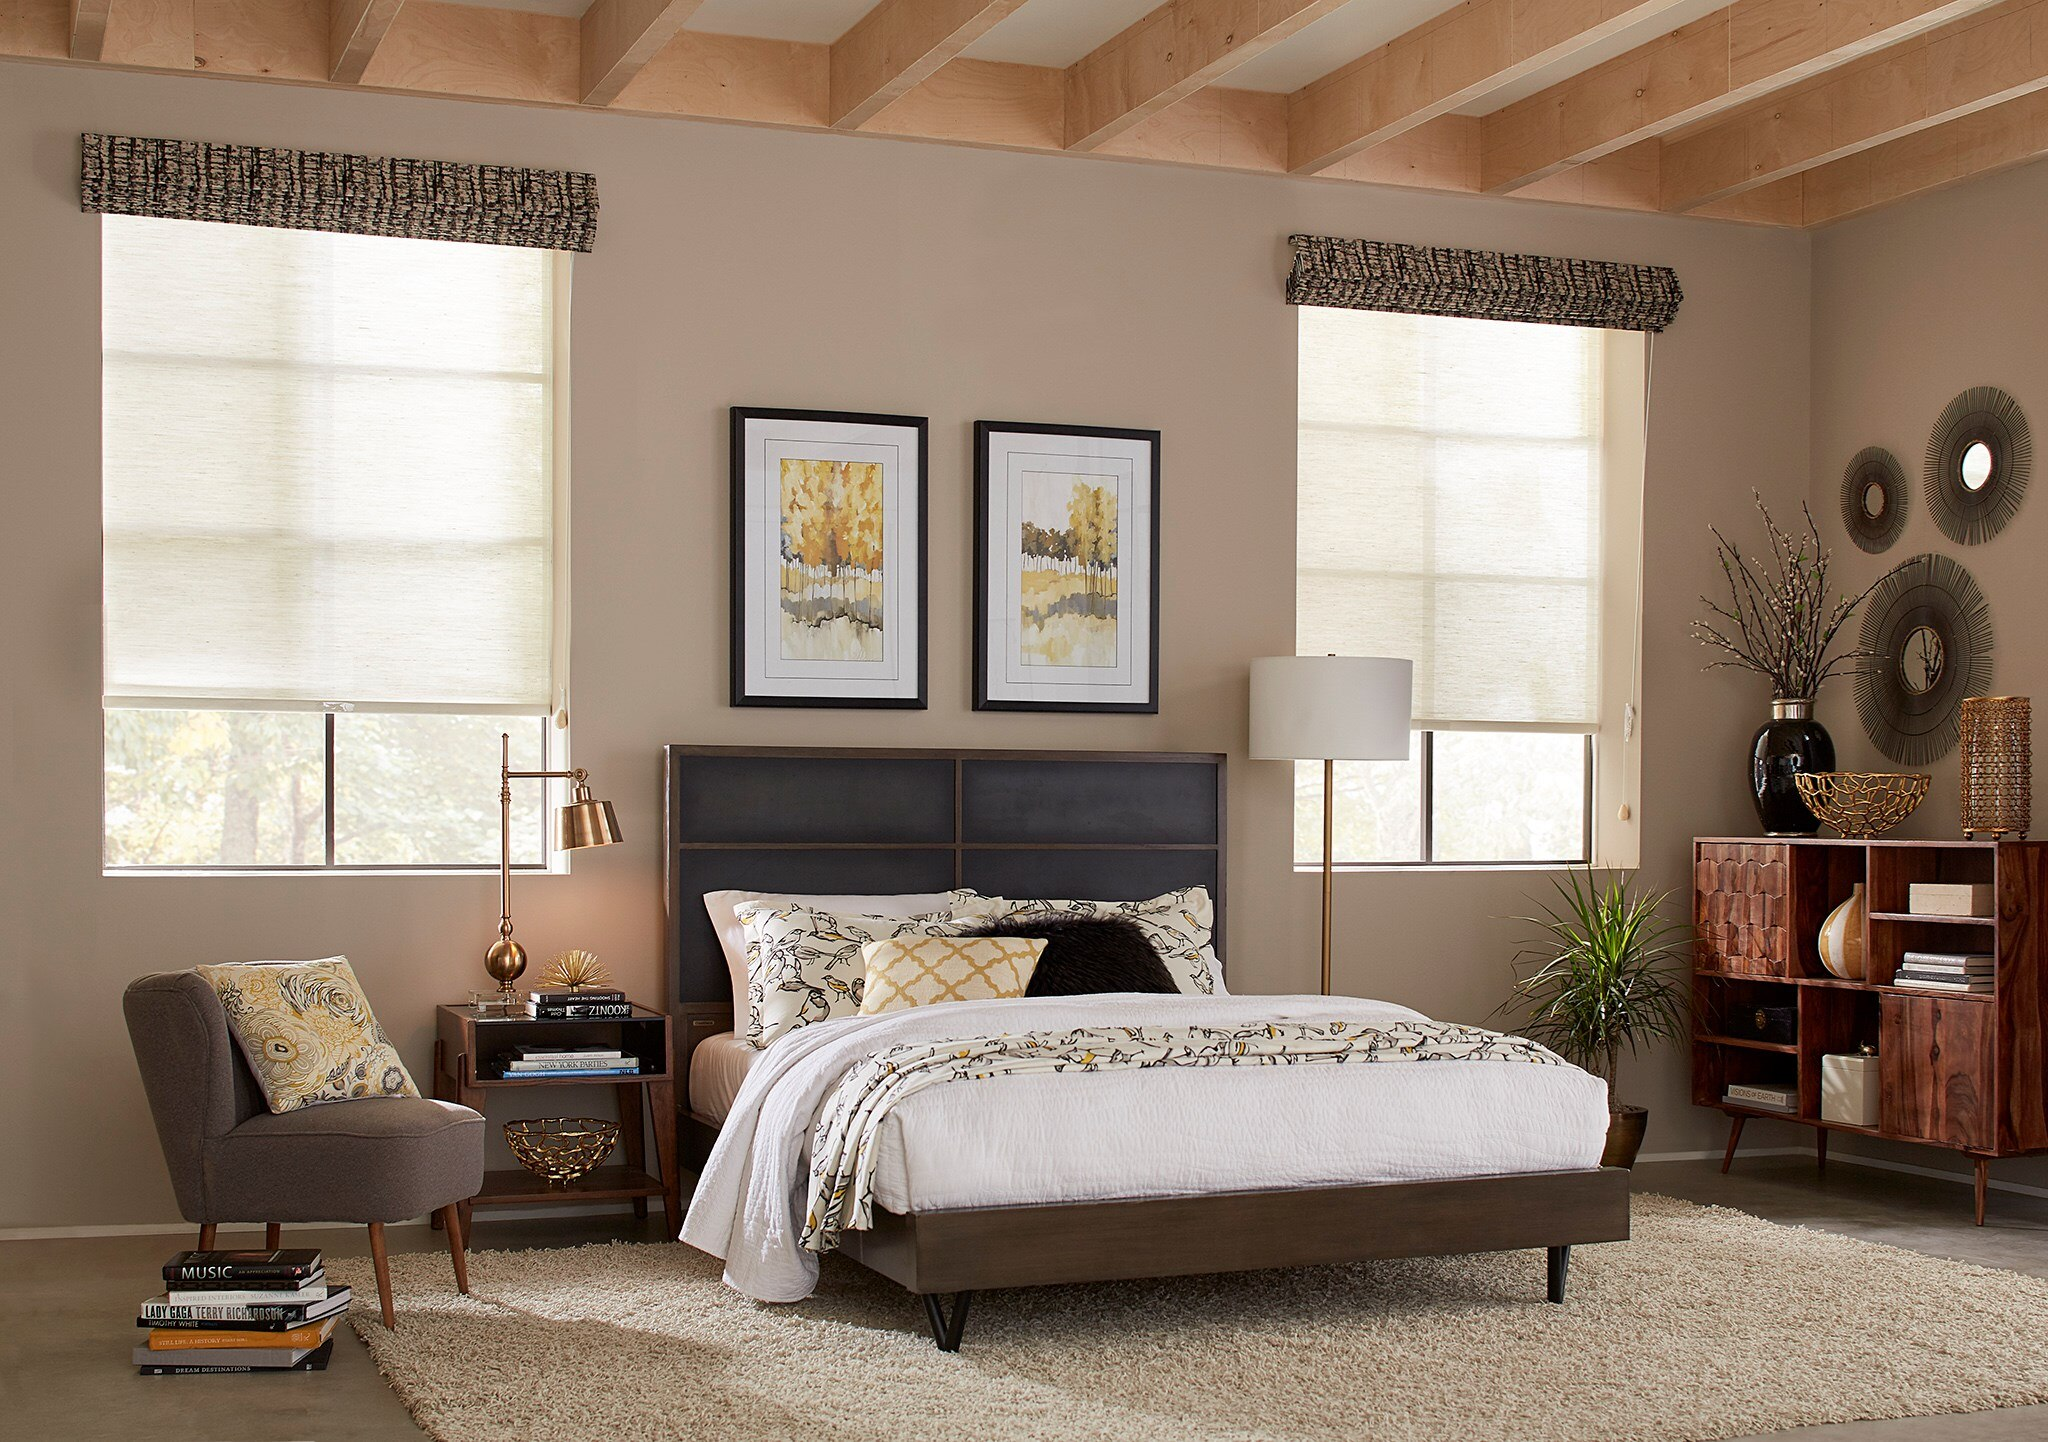 Signature Natural Light Filtering Roller Shade